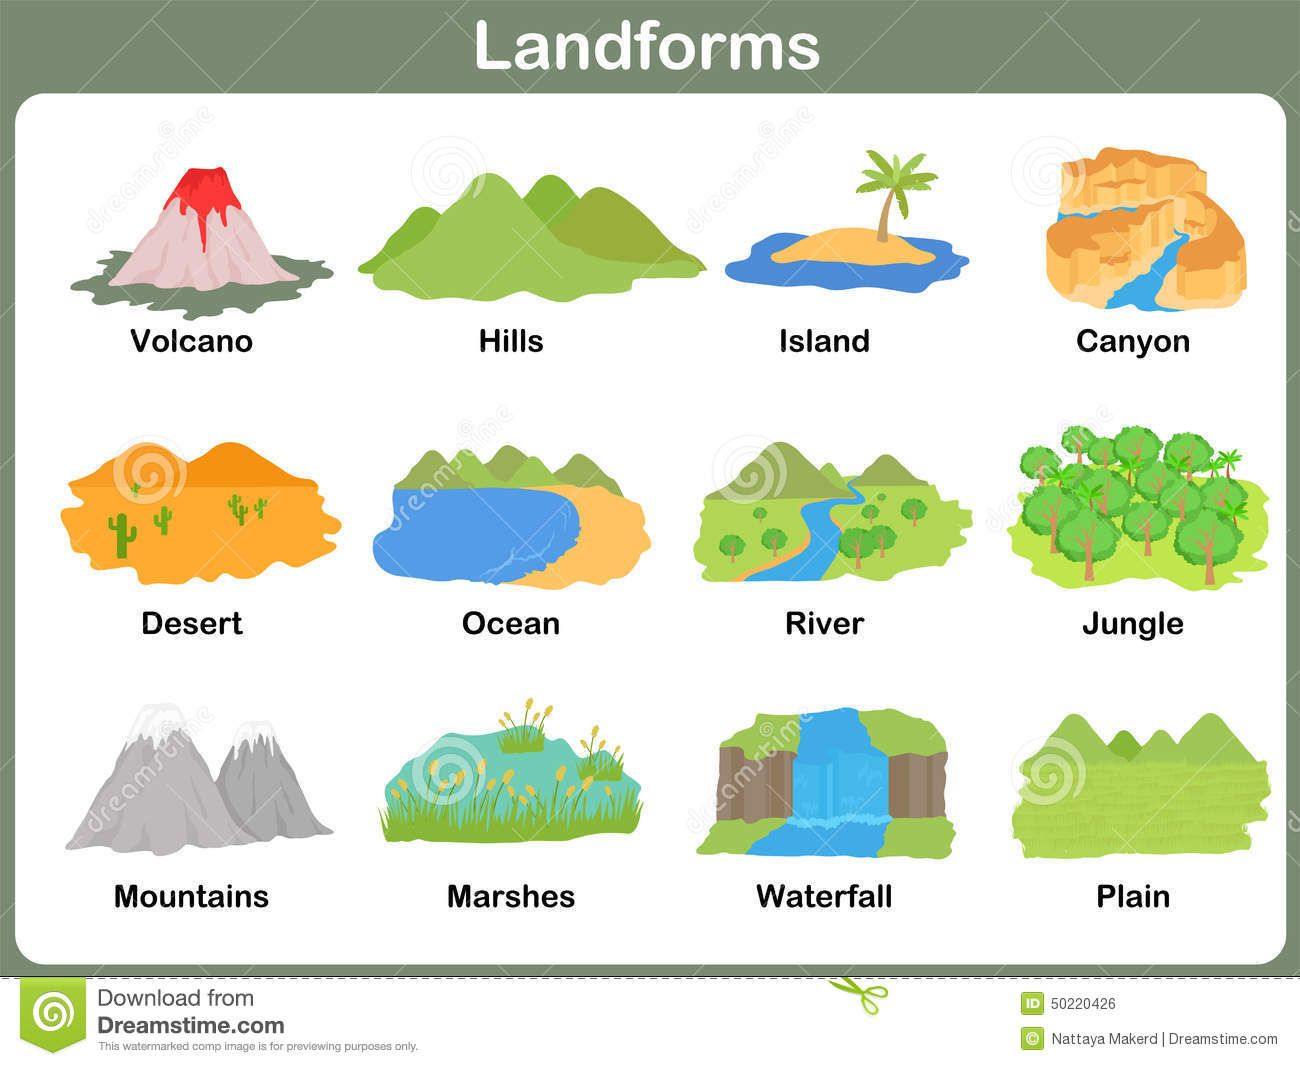 Workbooks landform matching worksheets : landforms for children - Google Search | Social Studies ...